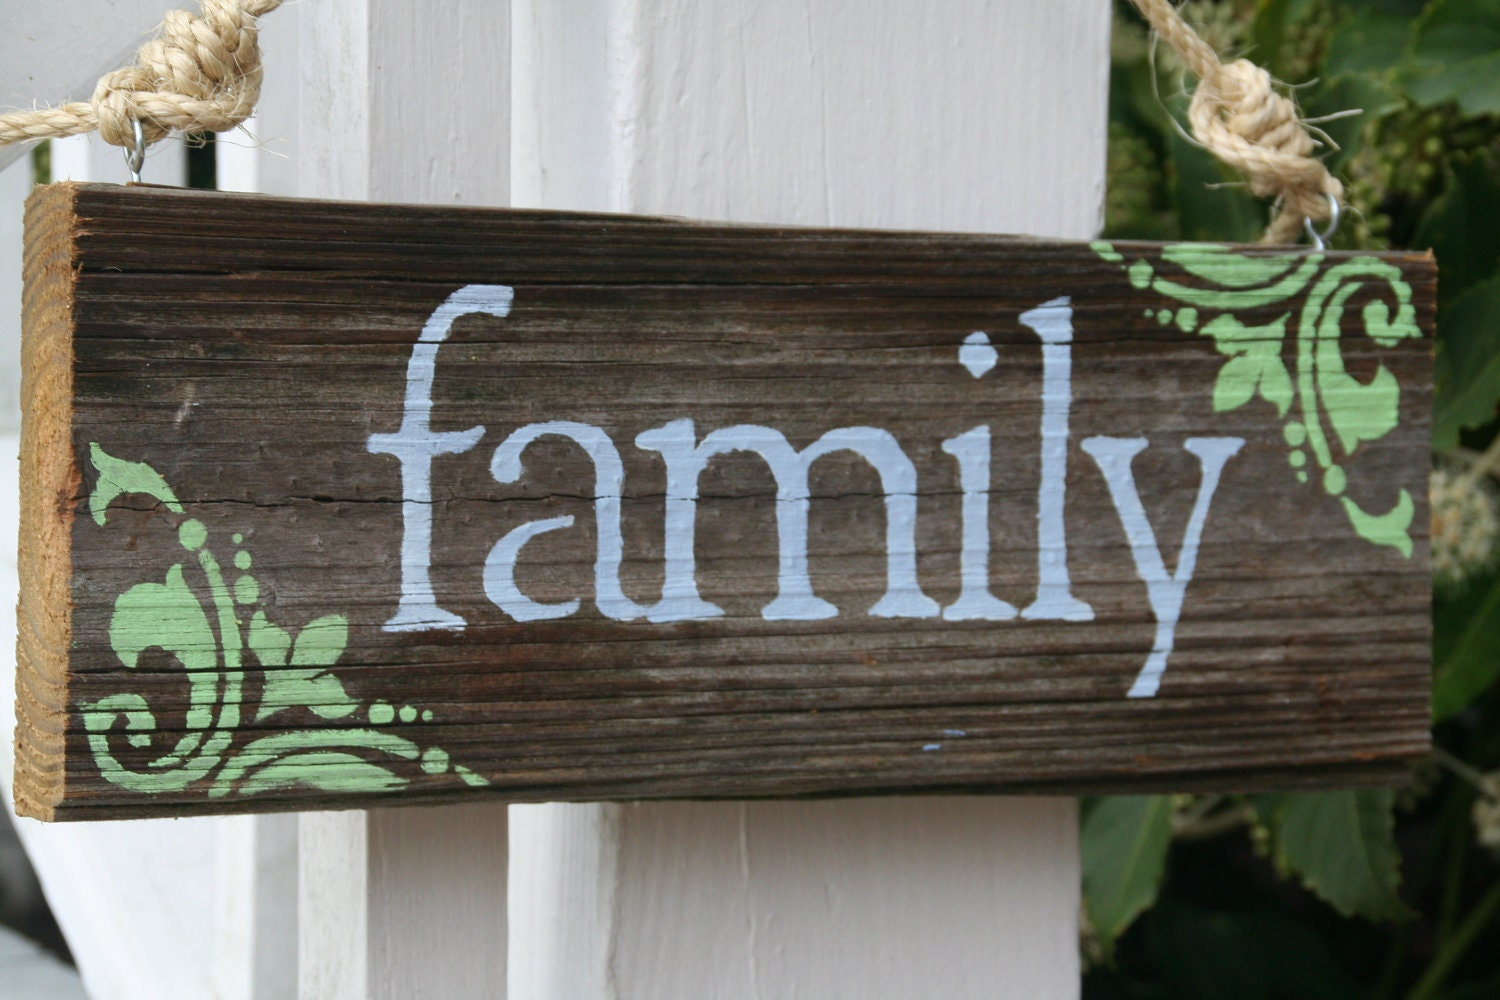 Family Sign Made From Reclaimed Dock Wood. Month Signs Of Stroke. Open Signs Of Stroke. Copyright Signs. Disorder Face Signs. Underarms Signs. Forgiveness Signs Of Stroke. Day Week Signs. Neurotic Signs